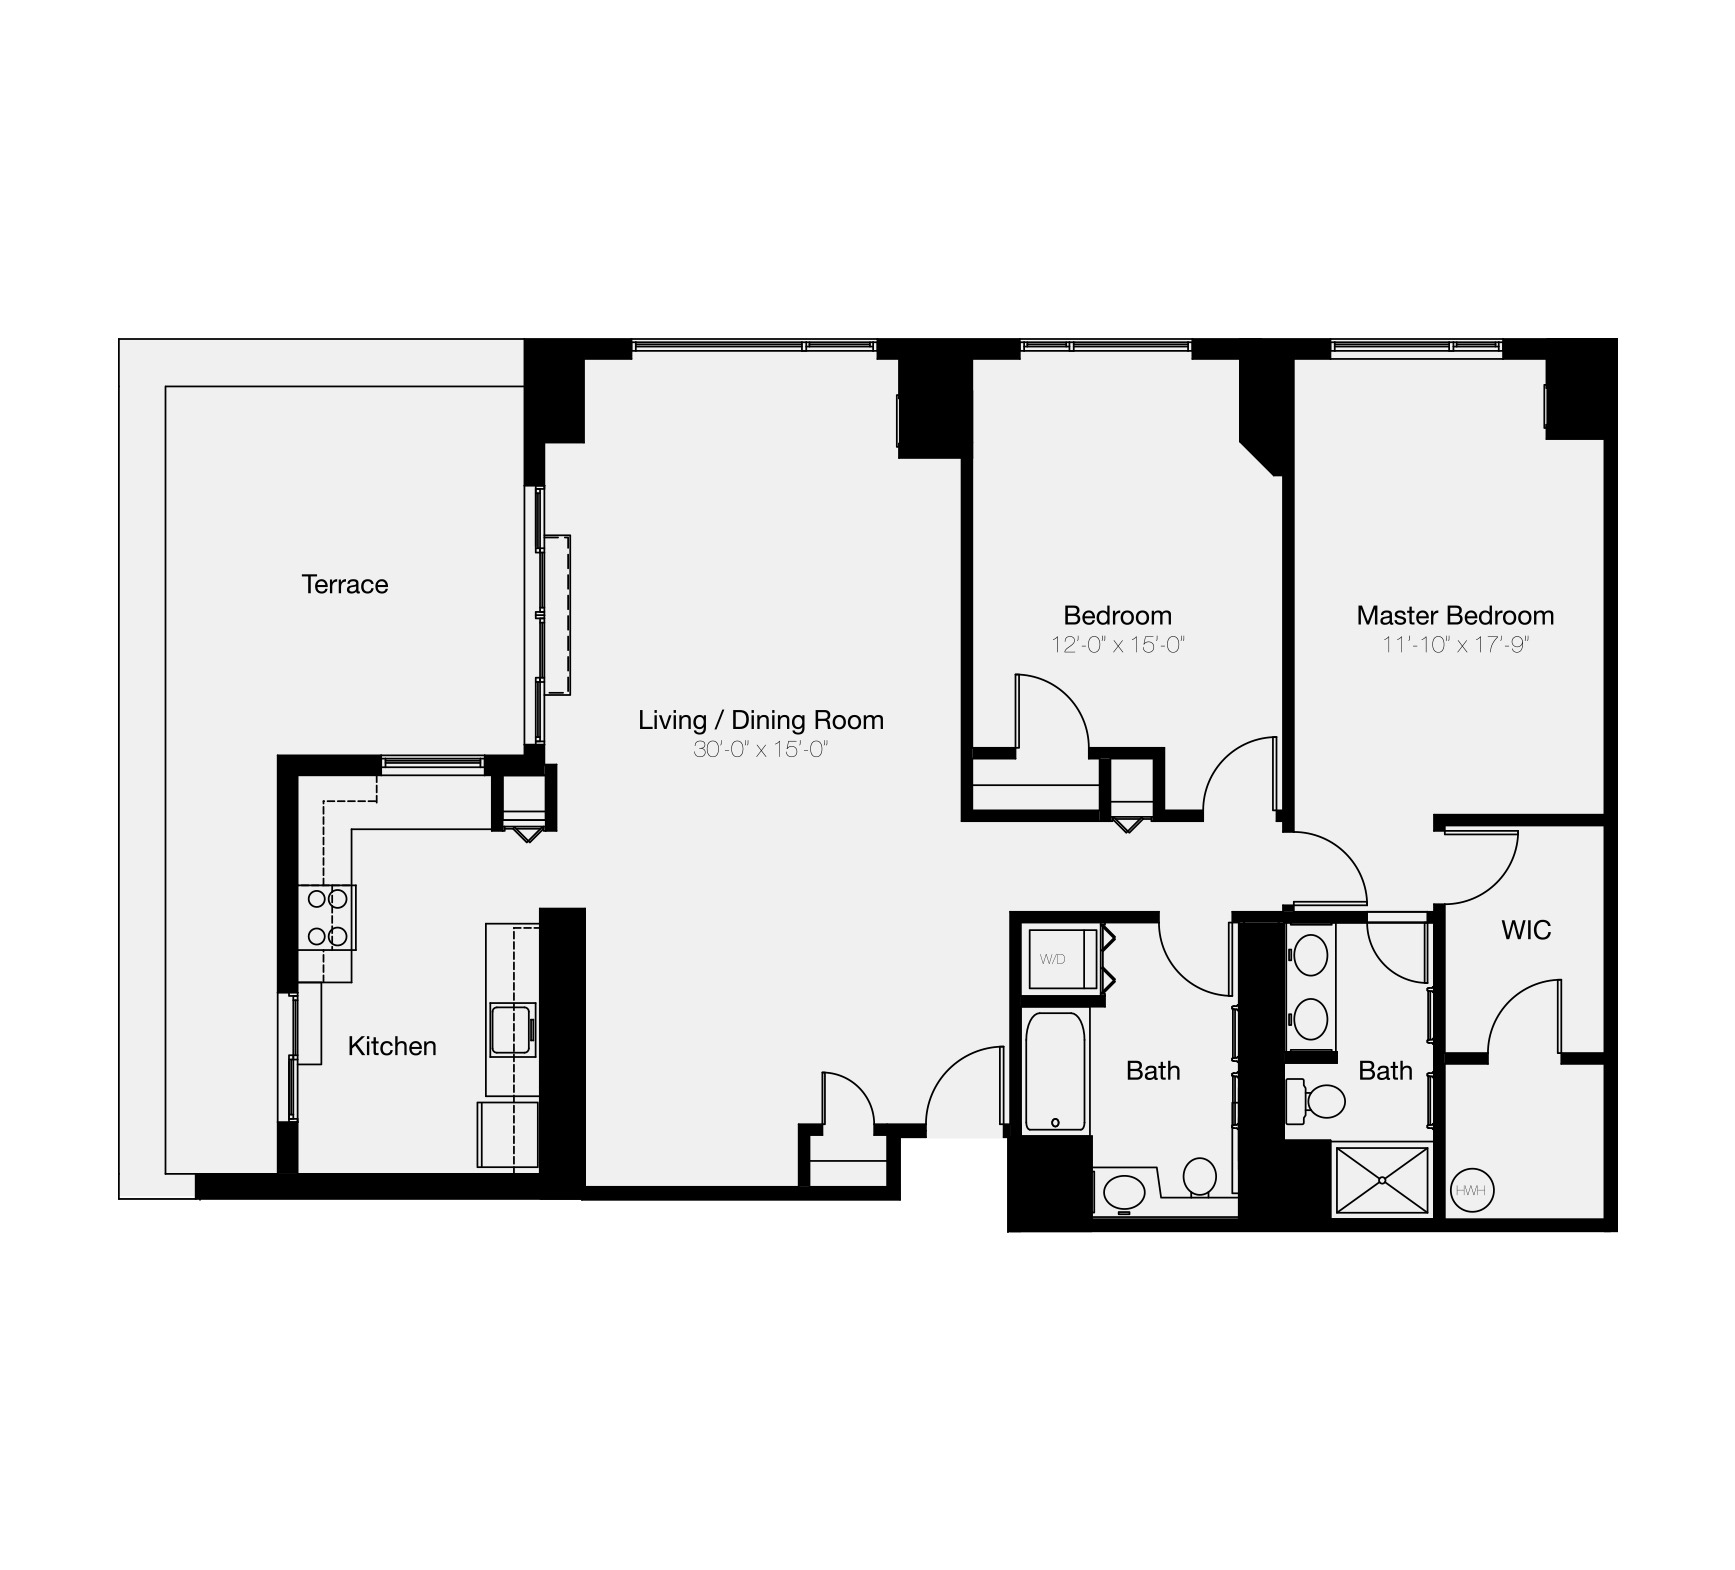 Two-bedroom floor plan at The Residences of Dockside condos for sale